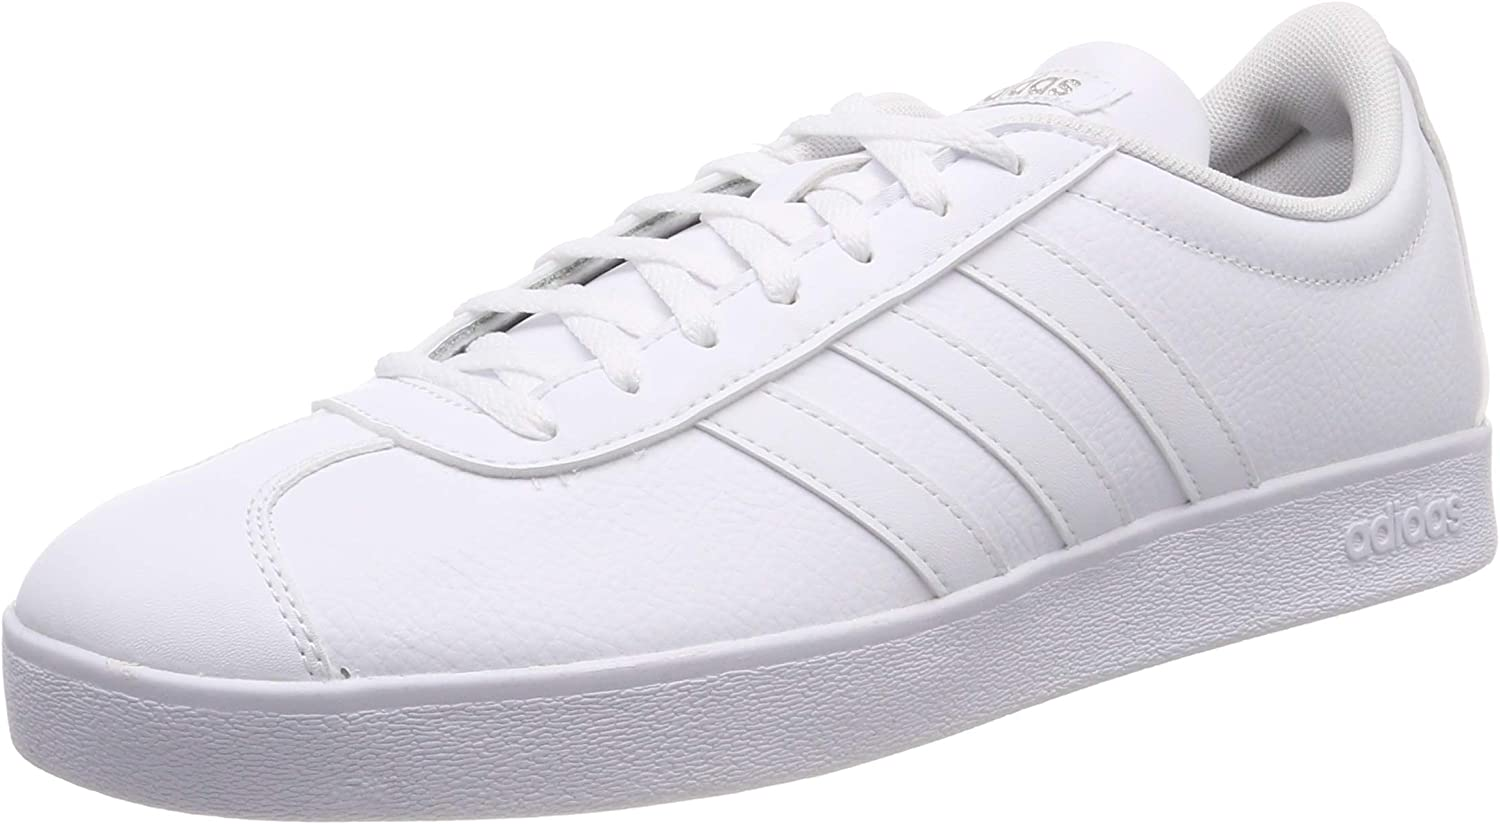 Adidas Women shoes Casual Sneakers Fashion VL Court Trainers Running New B42314